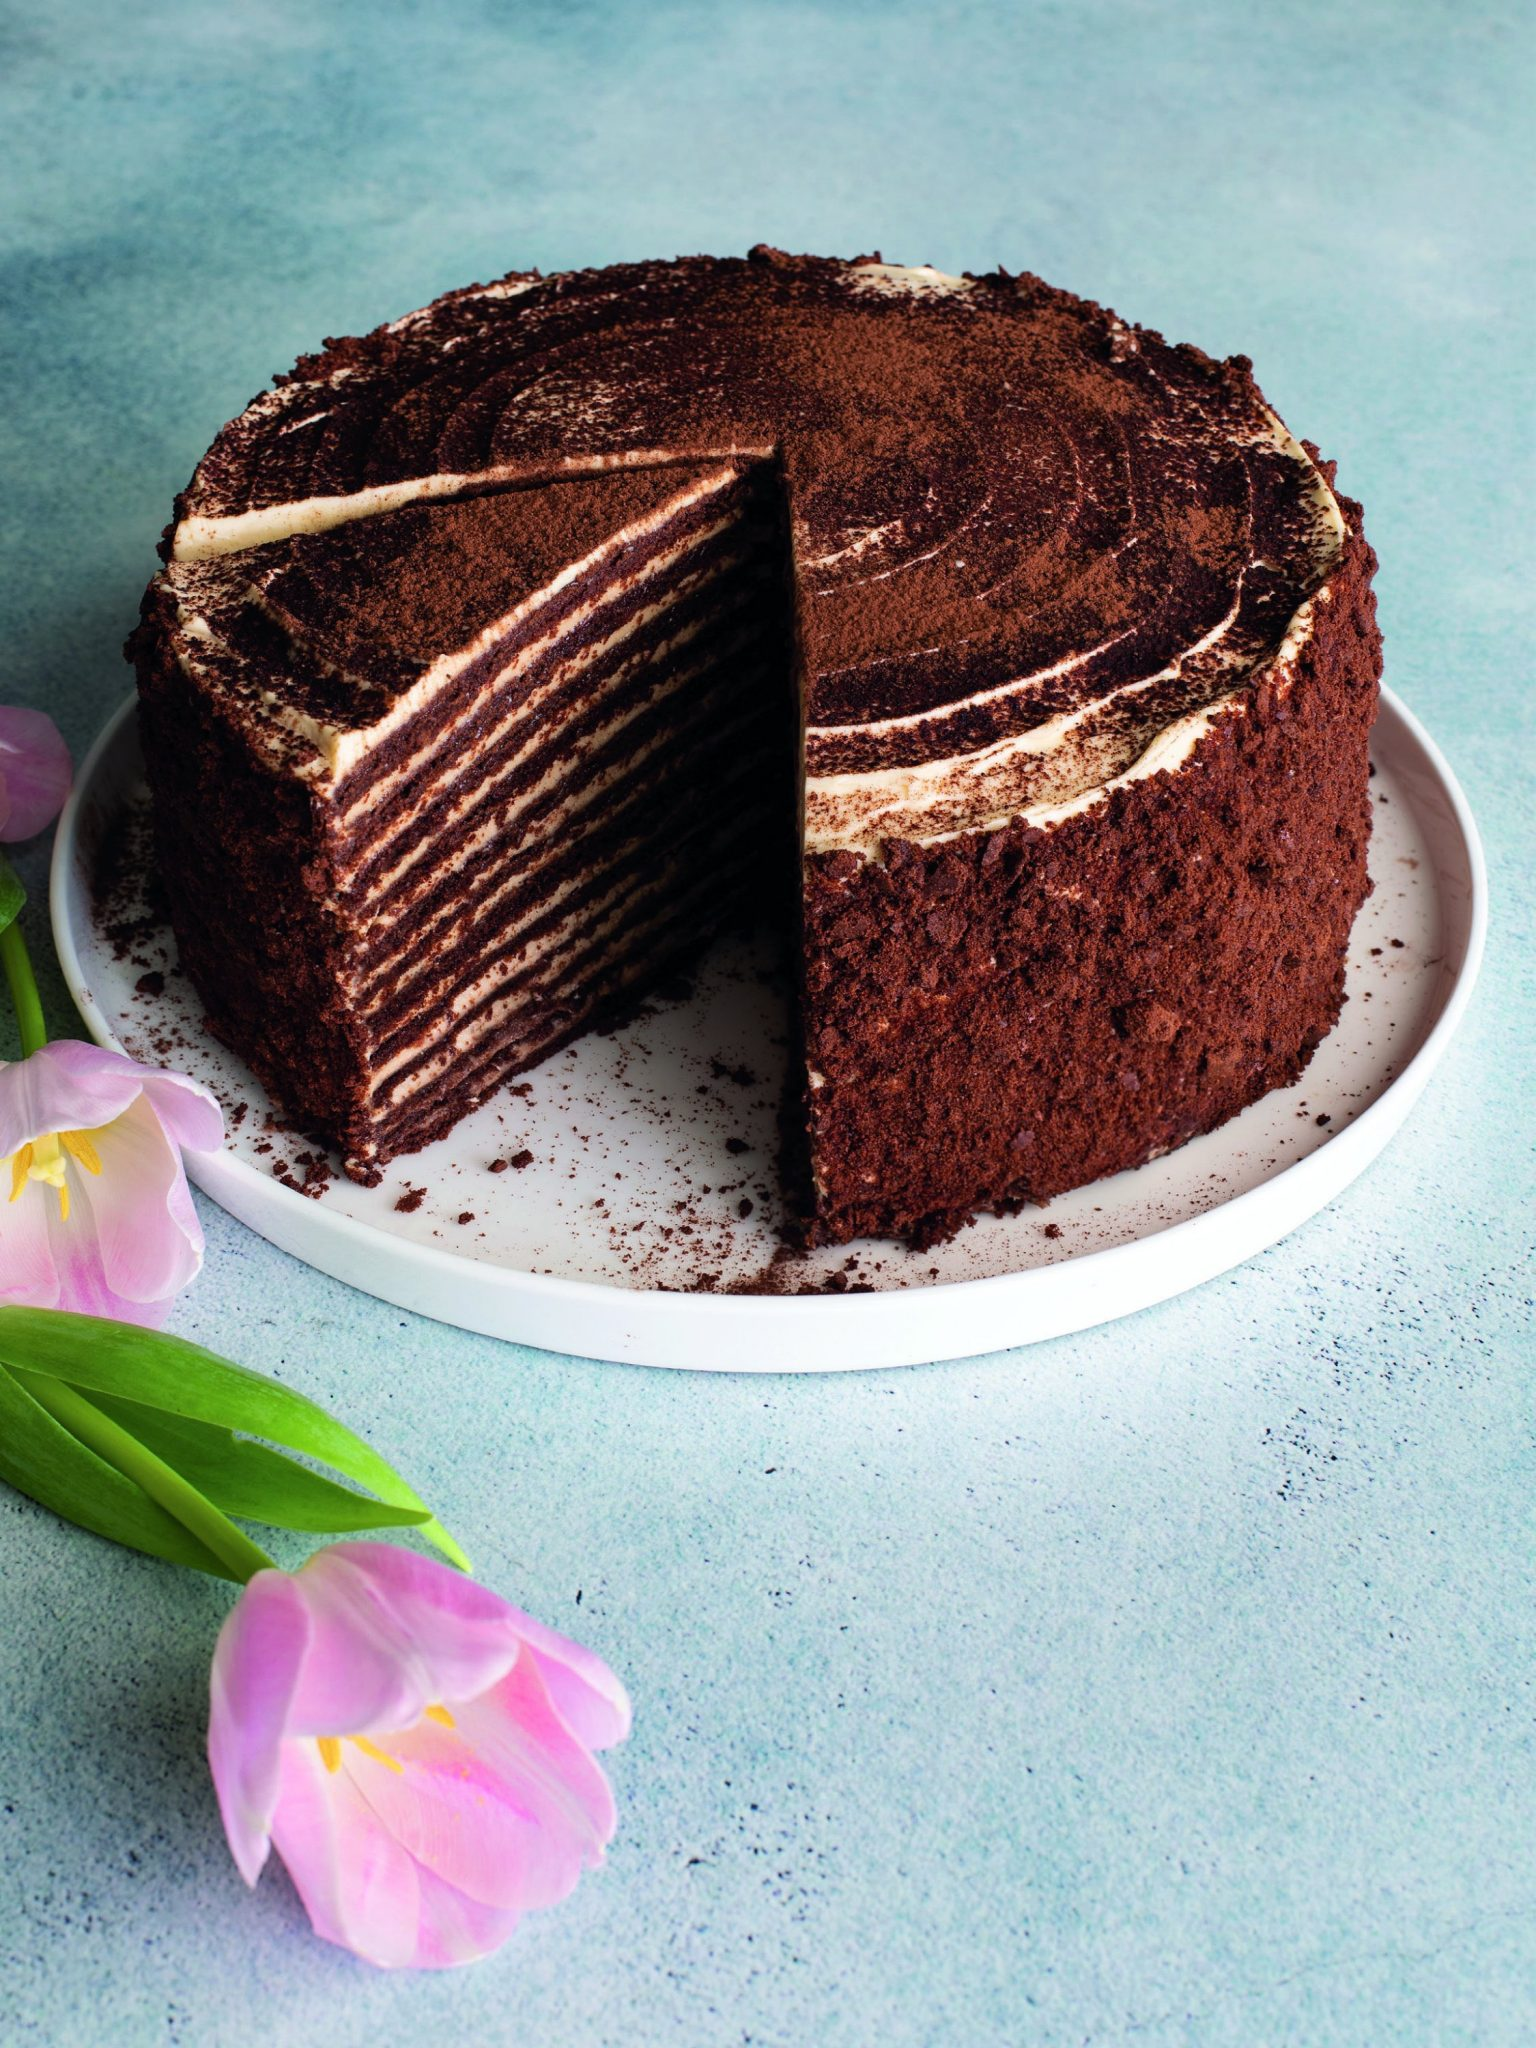 Faaiza Omar's Chocolate Honey Cake from her new cookbook 'My Sweet Life', published by Human & Rousseau Sonia Cabano blog eatdrinkcapetown